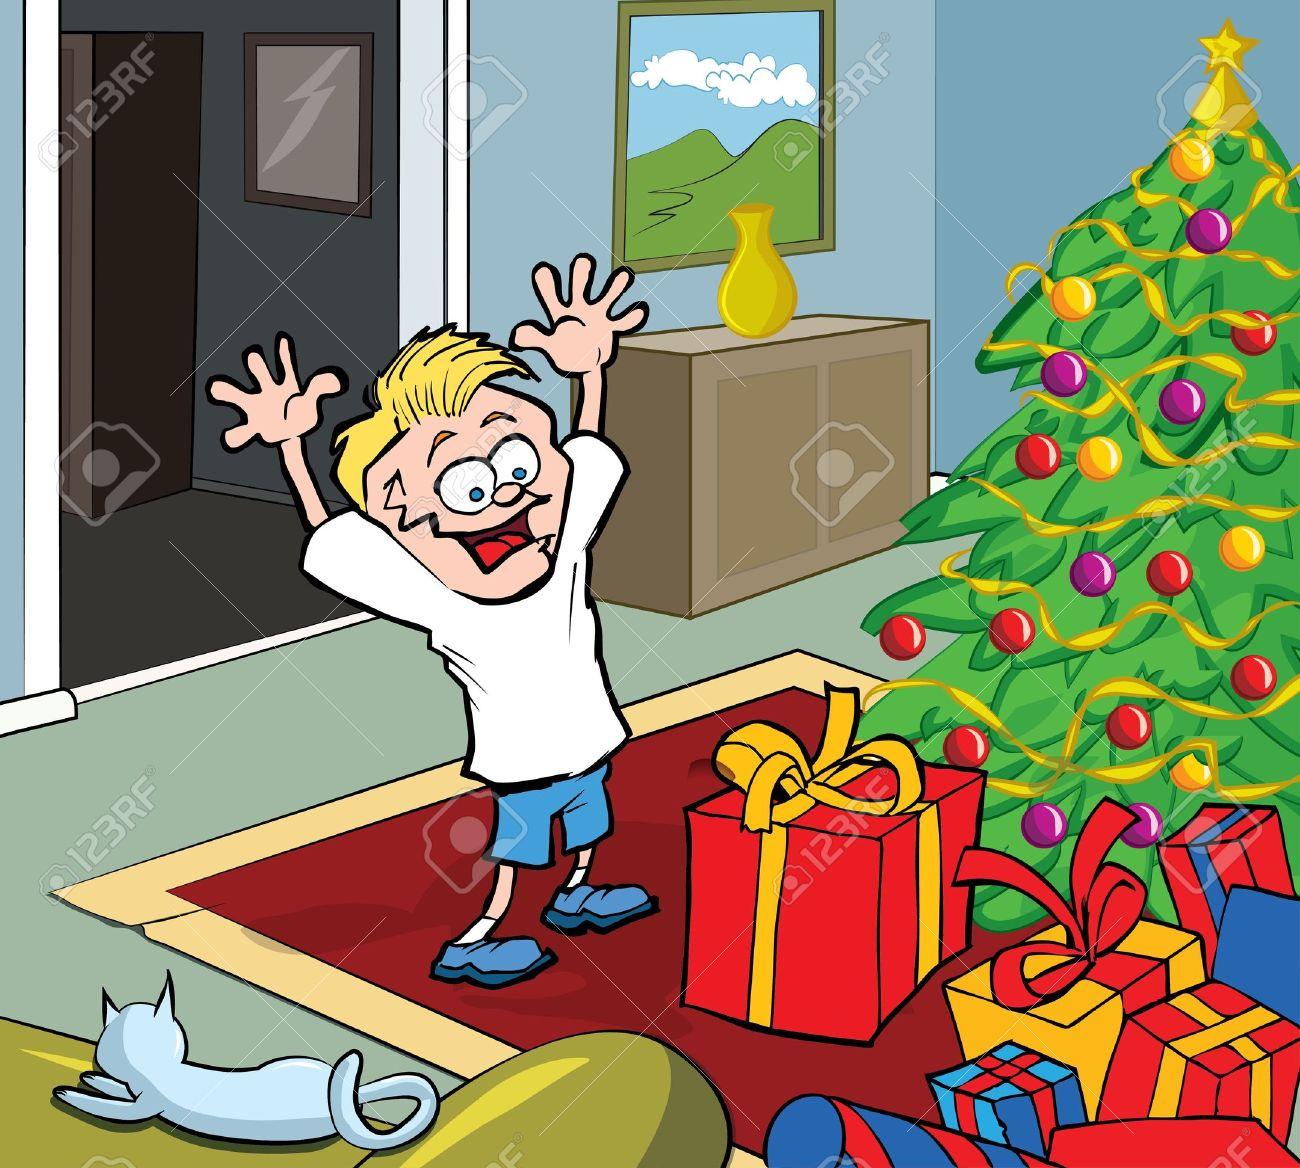 Cartoon Kid On Christmas Morning Opening Gifts By A Christmas Royalty Free Cliparts Vectors And Stock Illustration Image 11349460 Set of trees and shrubs. cartoon kid on christmas morning opening gifts by a christmas